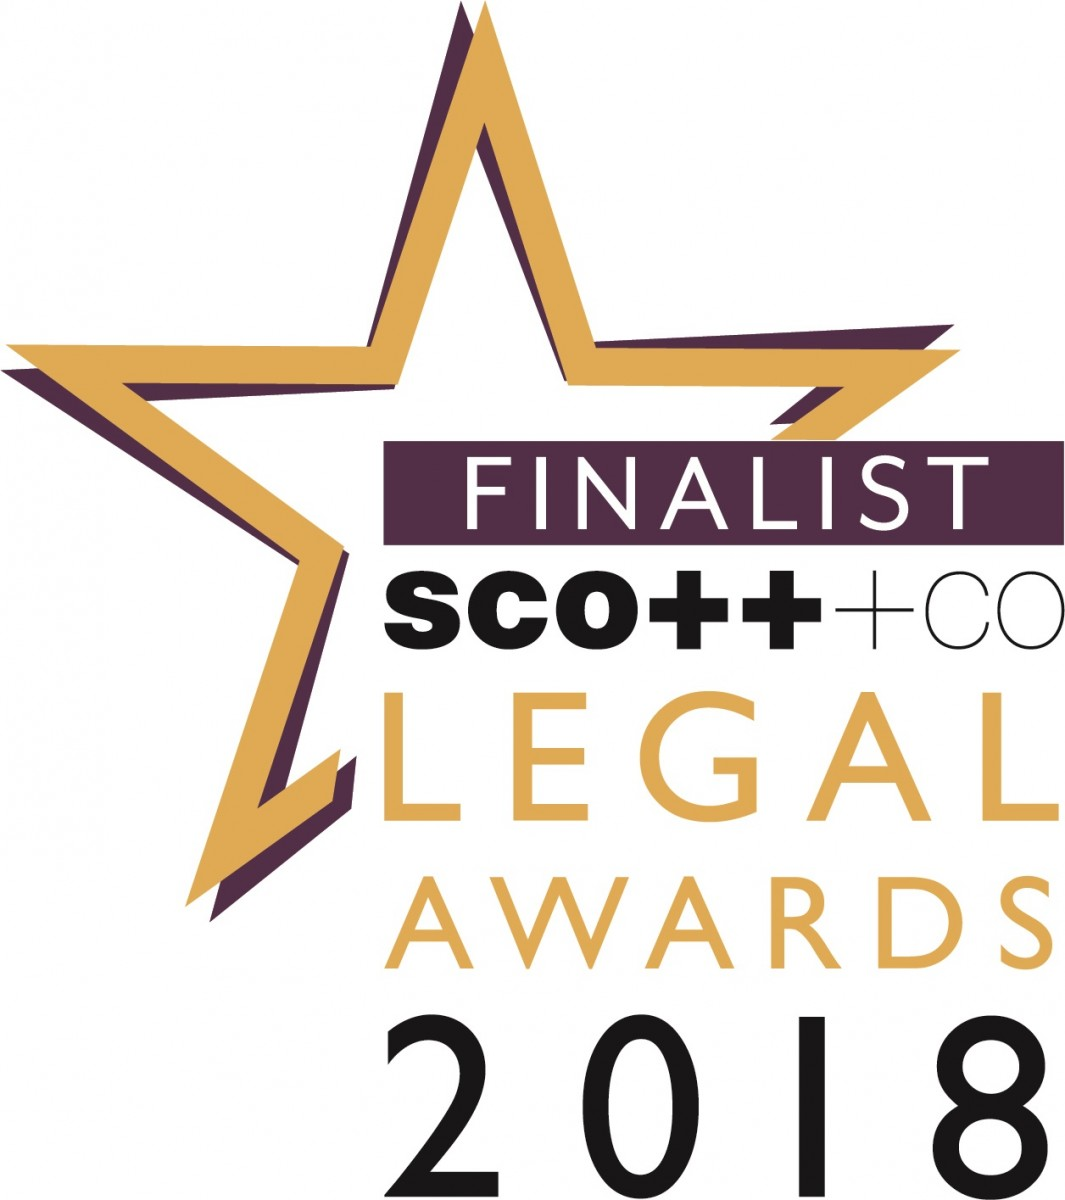 Finalist Scottish Legal Awards